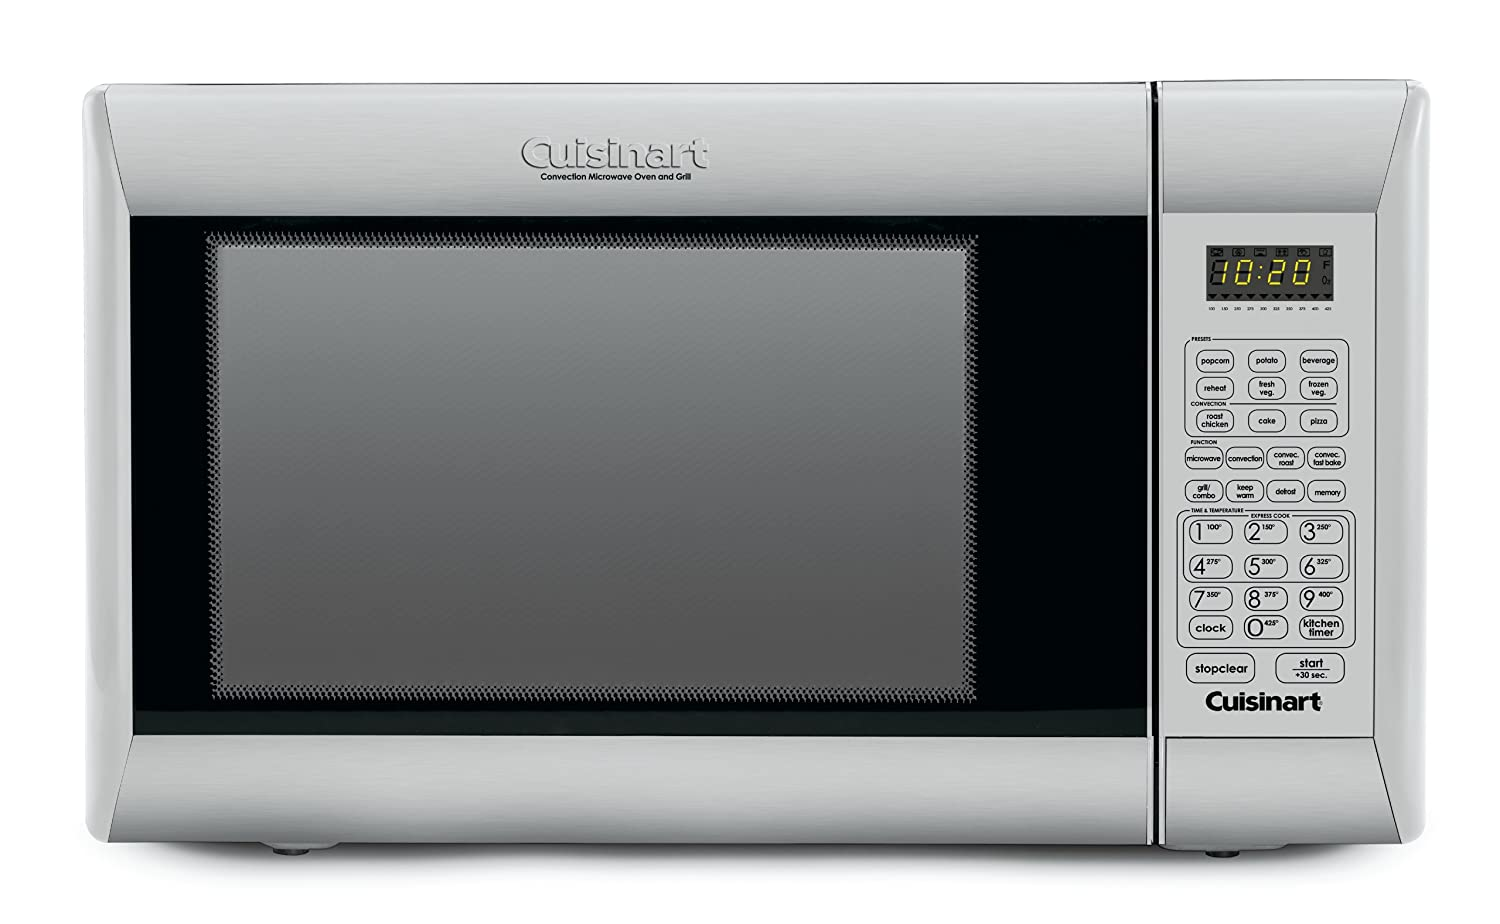 Amazon.com: Cuisinart CMW-200 1.2-Cubic-Foot Convection Microwave ...